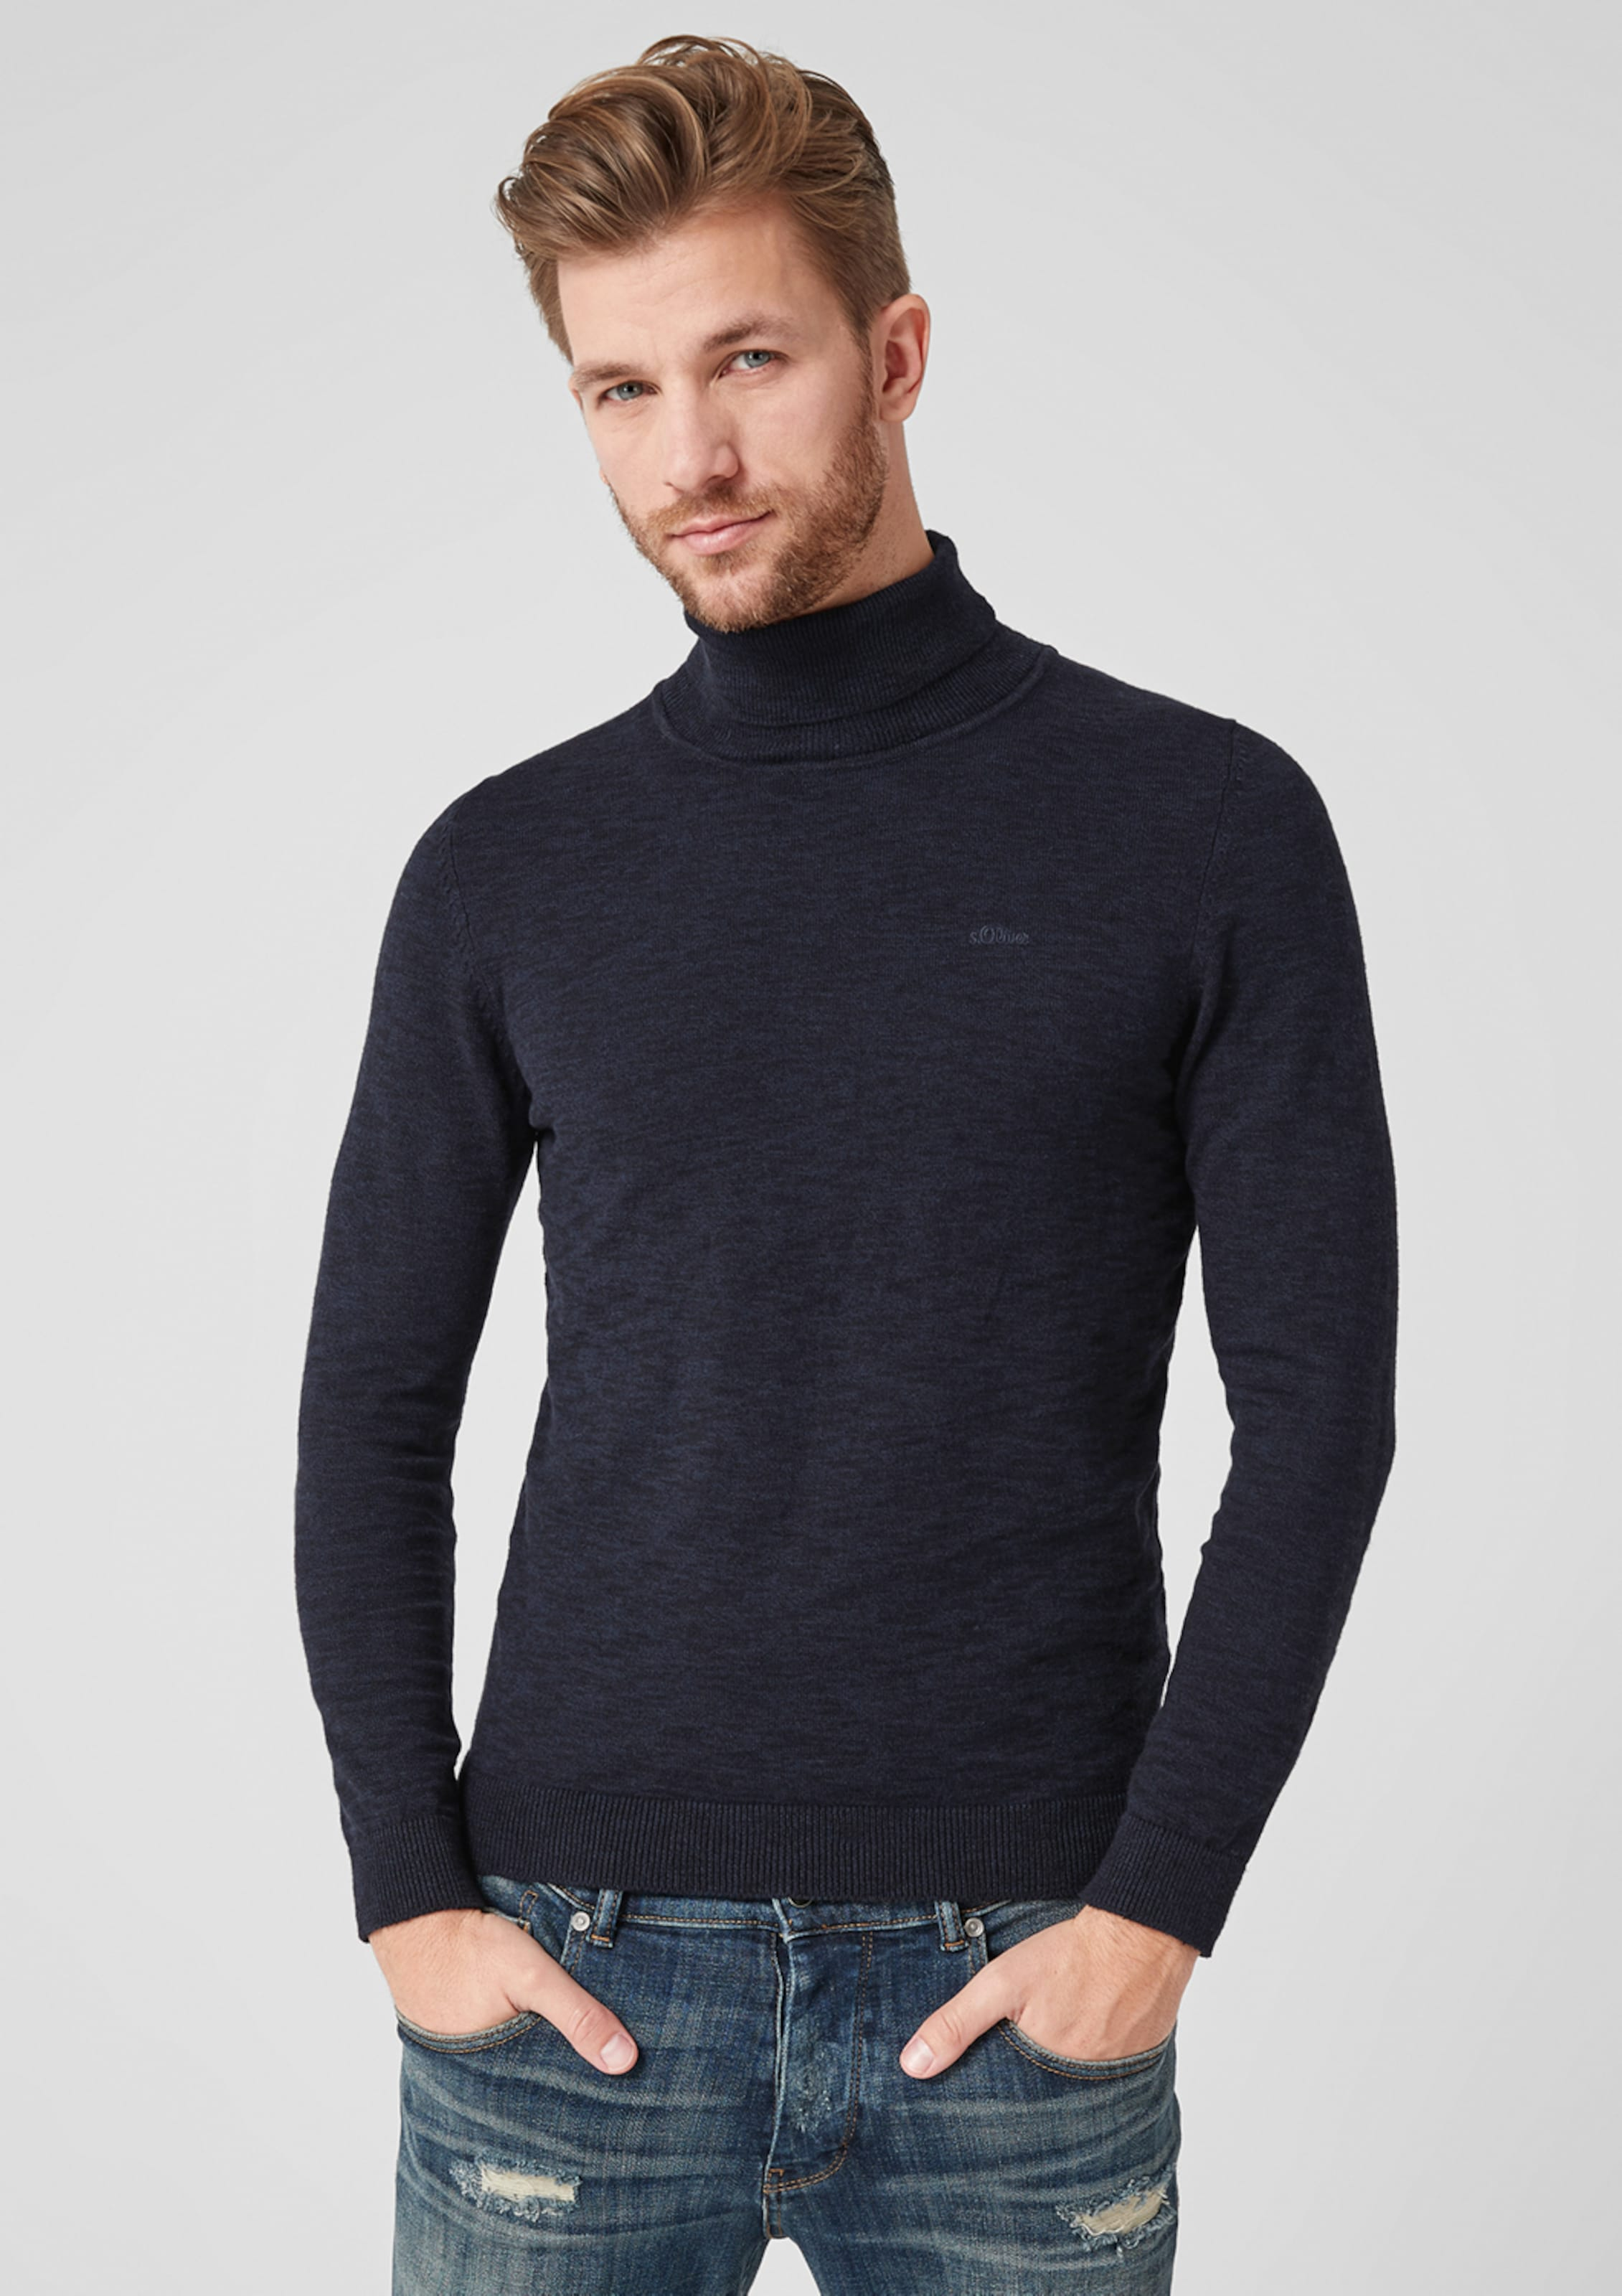 Label Pullover Red Nachtblau S oliver In tdshQr